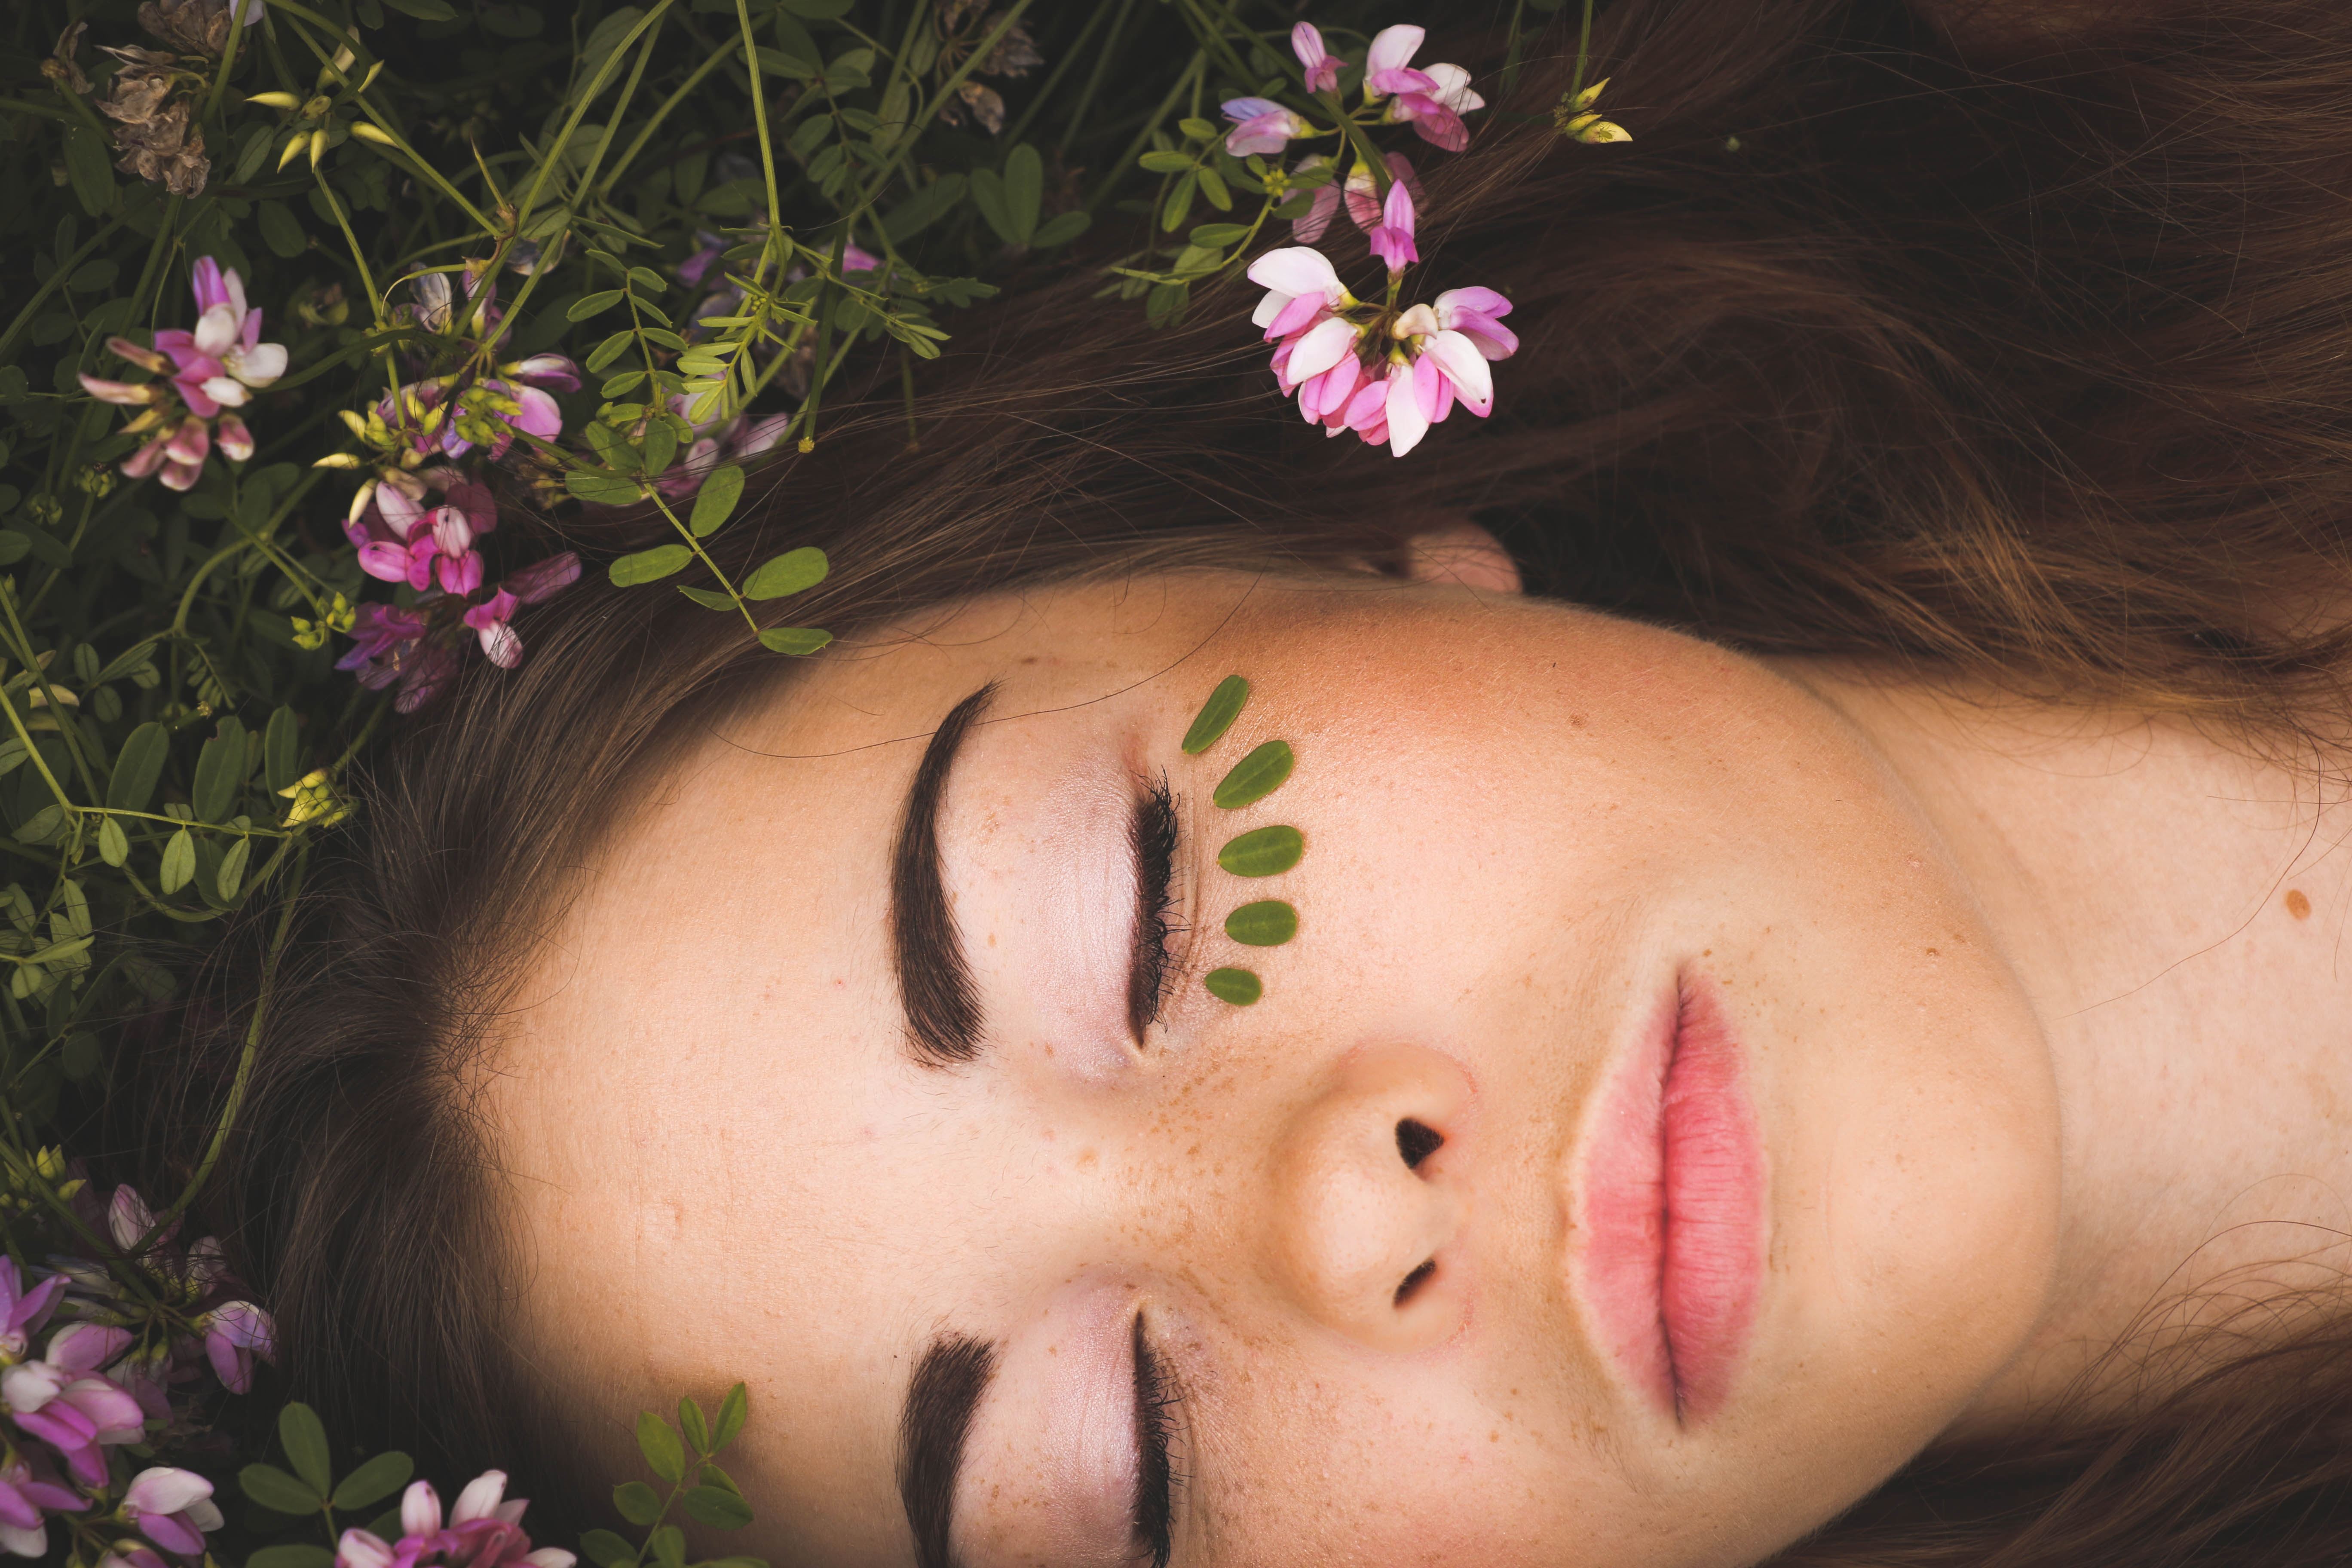 woman laying in grass with lotion on her face